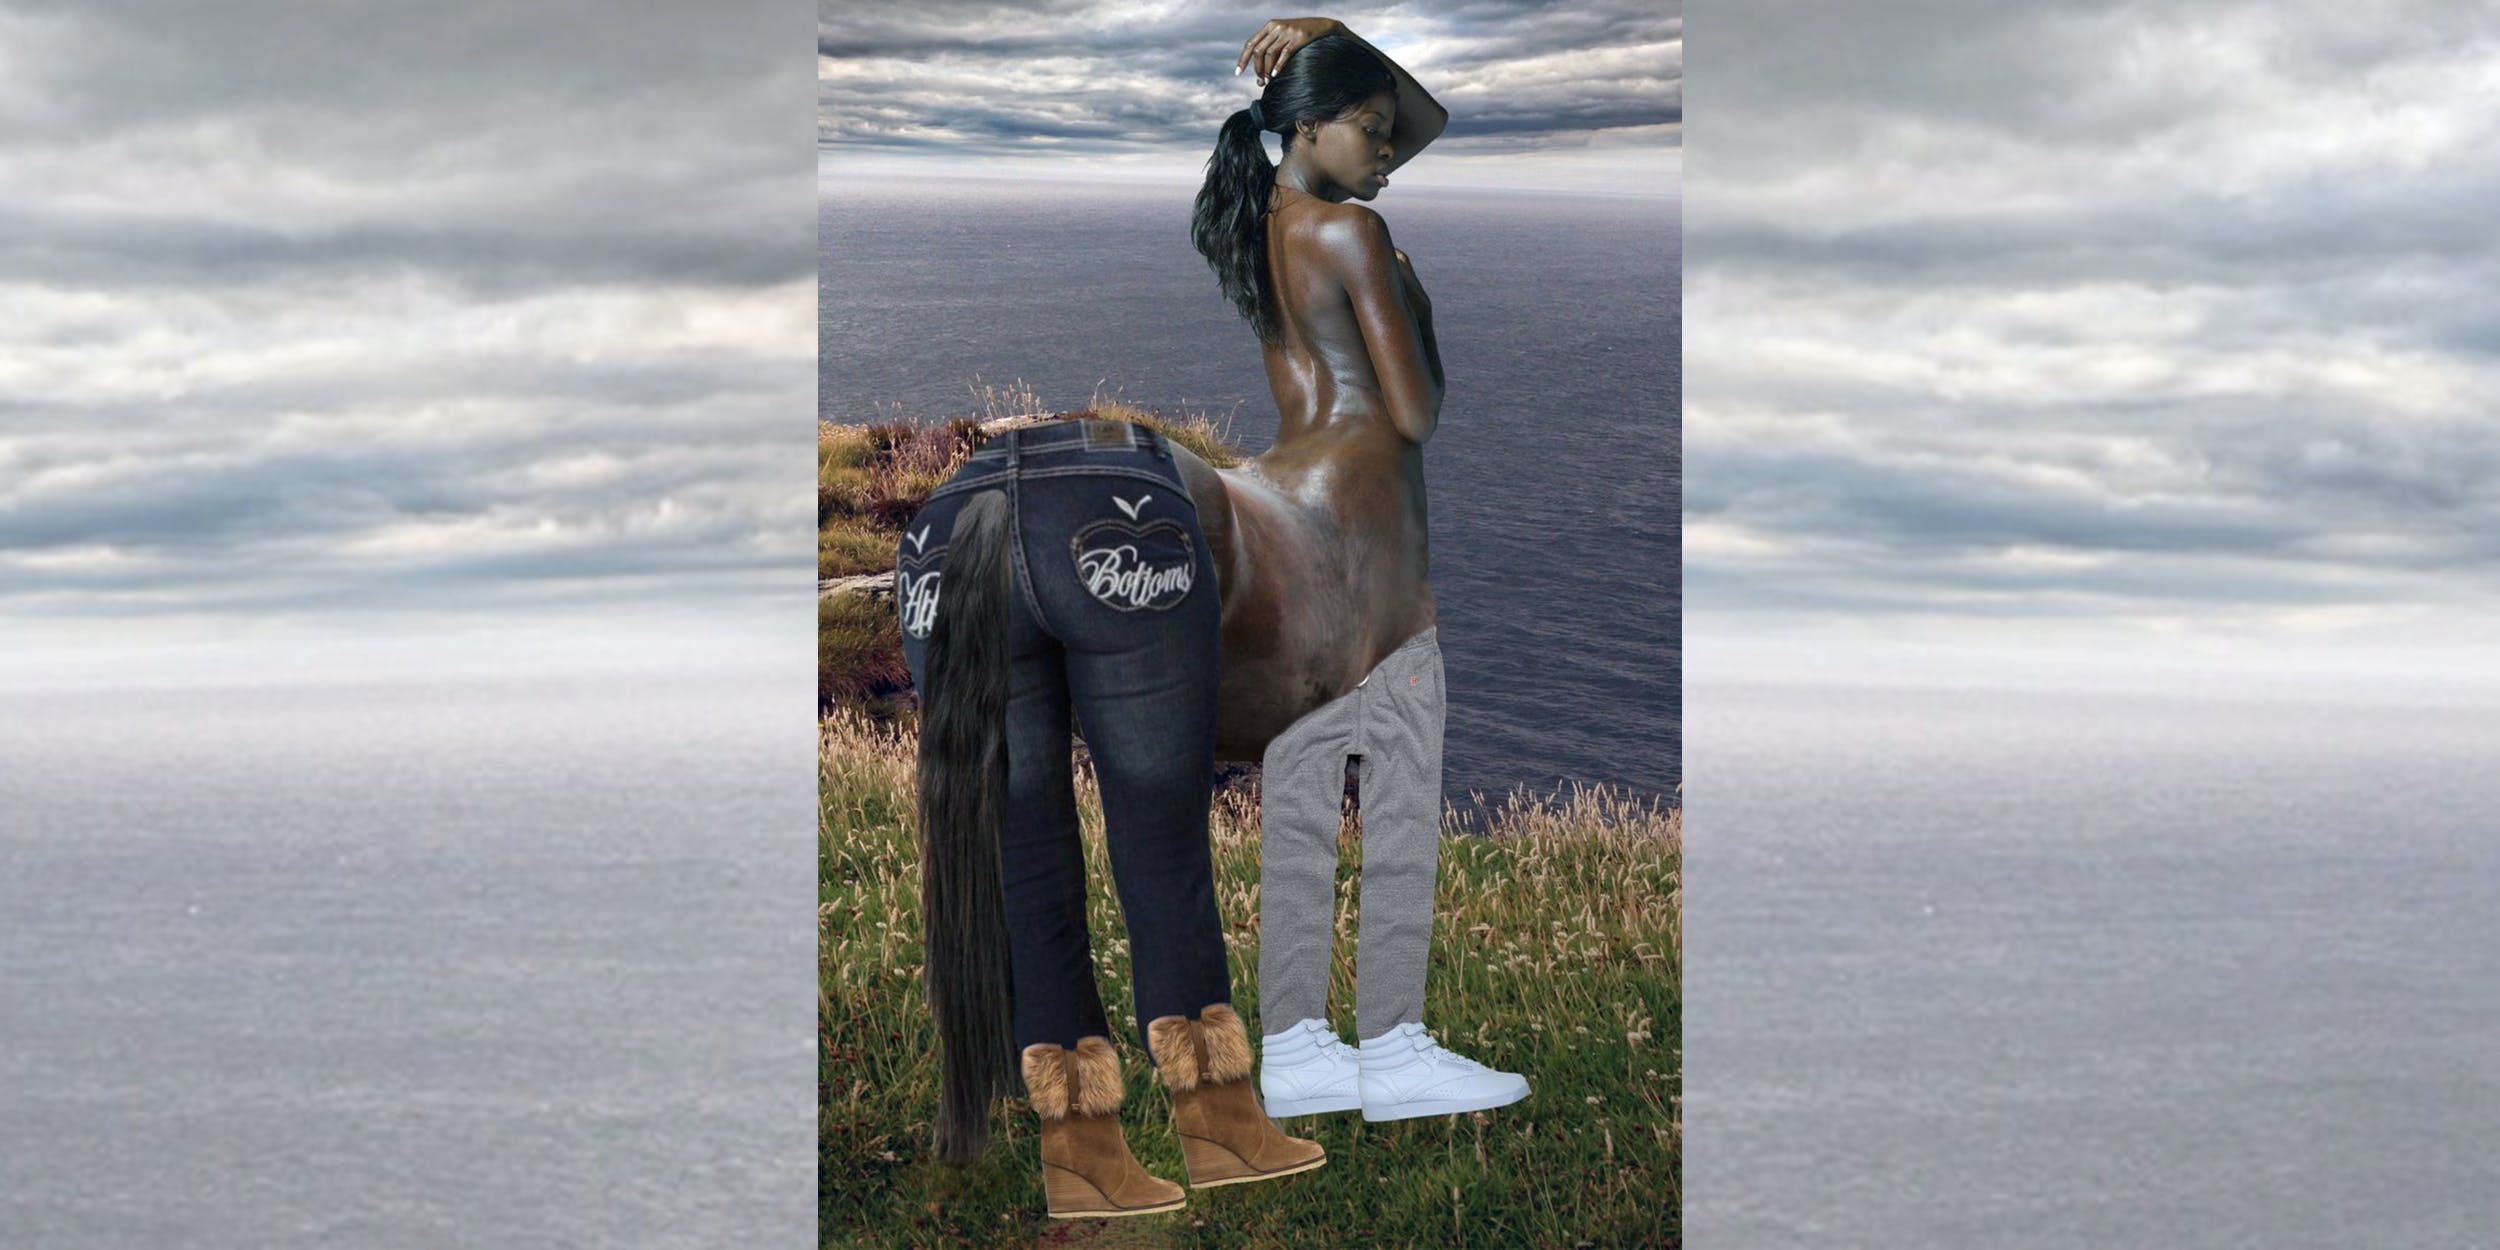 Centaur woman with Apple Bottom jeans, boots with the fur, baggy sweatpants and the Reeboks with the straps